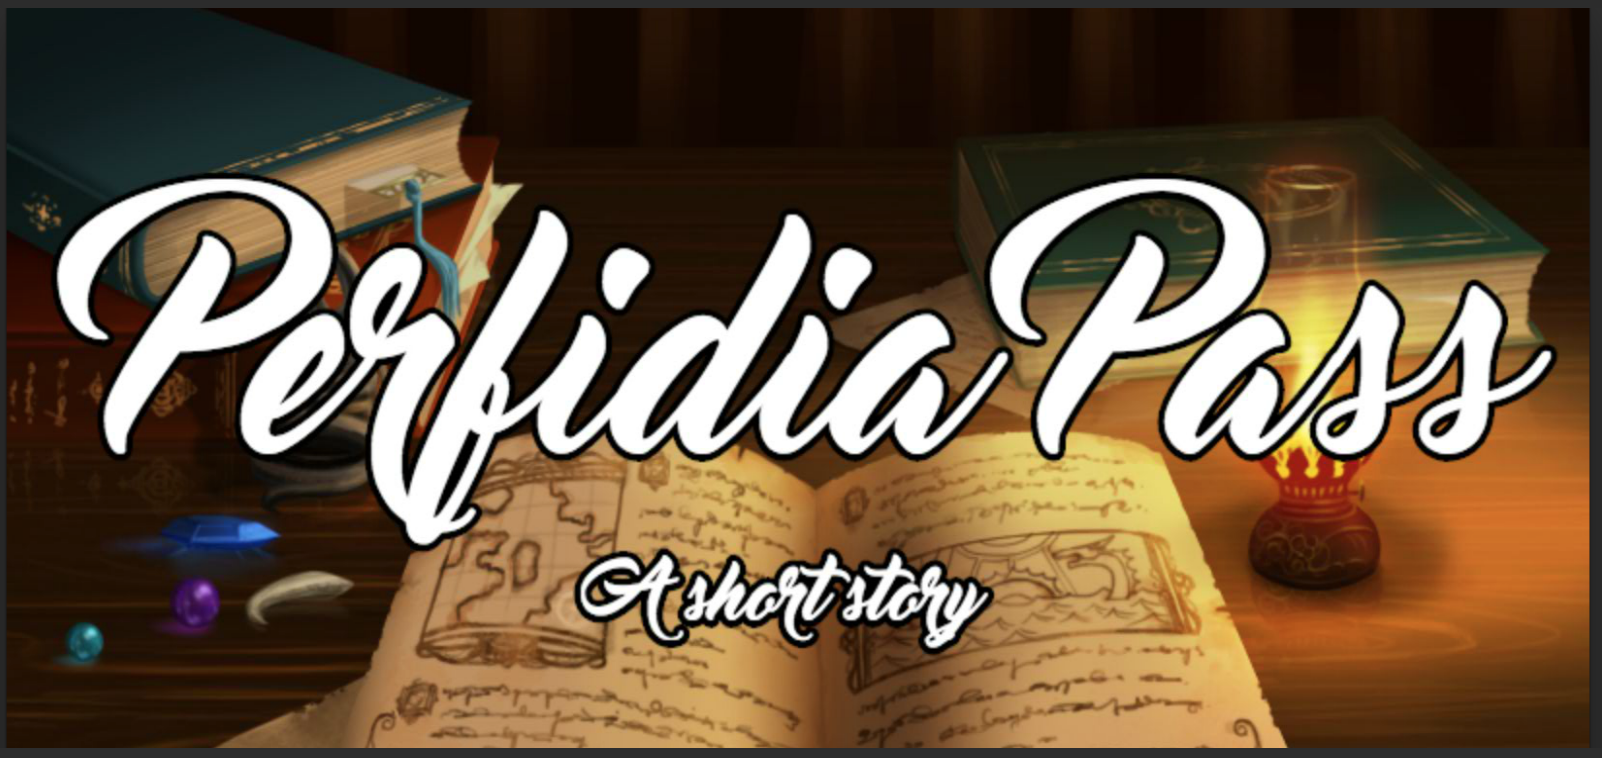 Perfidia Pass - a short story